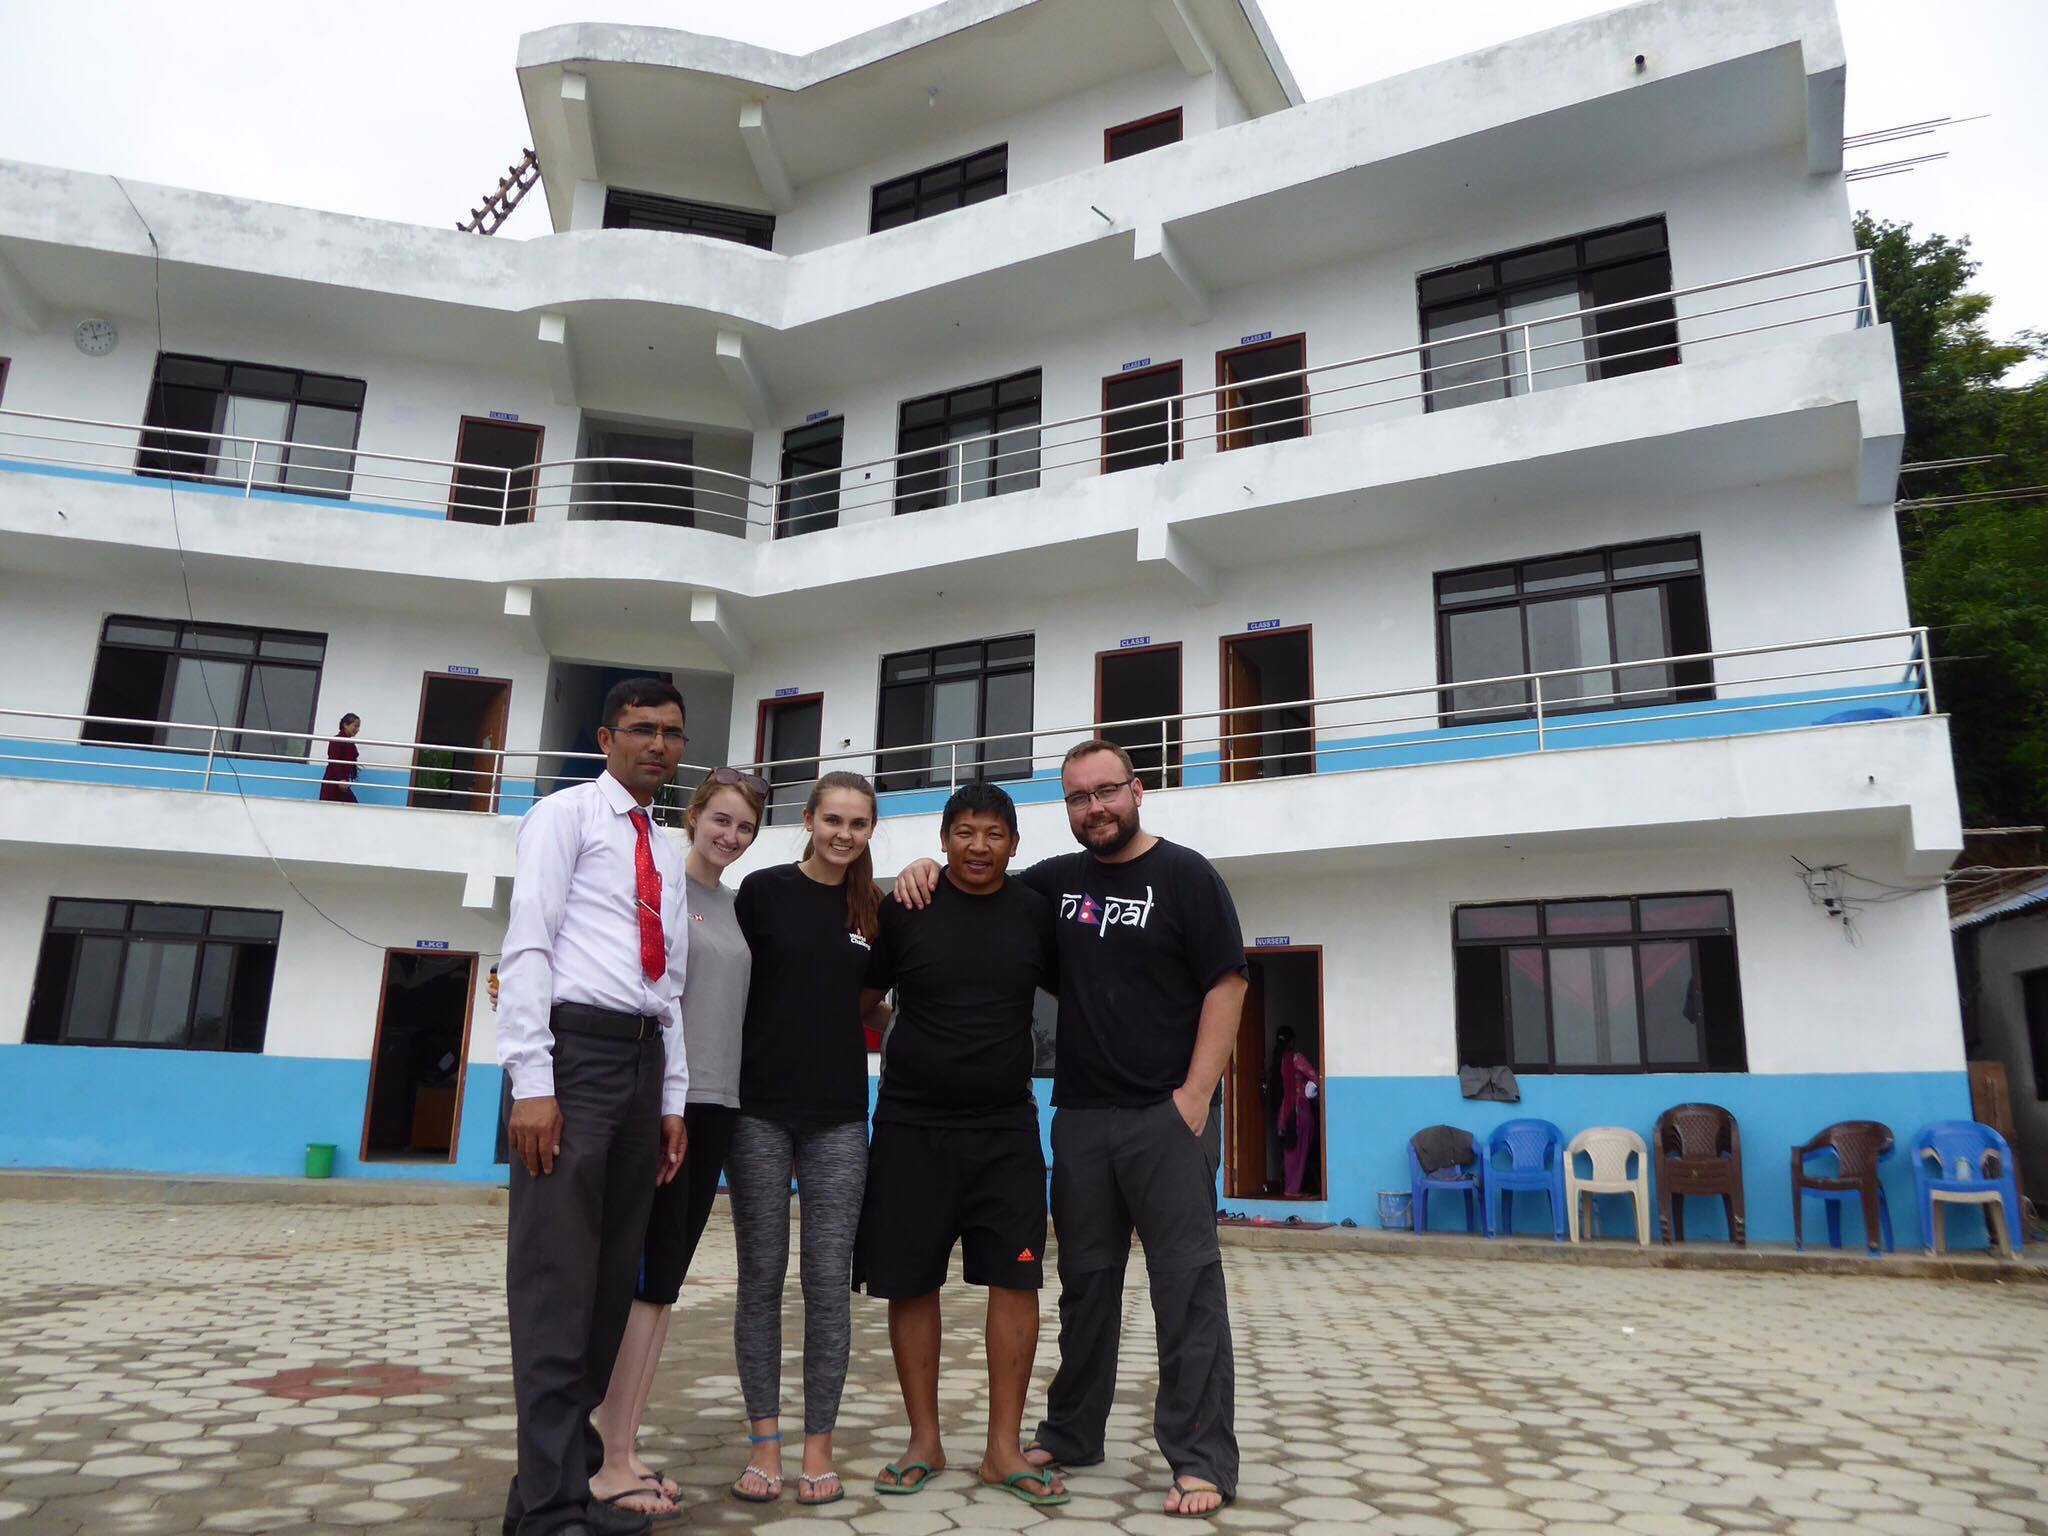 Success story: Sophie Jago - Amount Raised: £33,166Time taken: 3 yearsMost of the money went towards building a school in Nepal called Hillside Academy - it took 3 years to build and is now open with over 200 students. The rest went to helping schools in Nepal and Sri LankaHow did she do it?We got the most money through sponsored events like walks, runs, sleep outs in school. A really successful event was our quiz nights as we ran a raffle at the same time. We also did car boot sales and organised treasure hunts for younger kids.Sophie and her team outside the school which she fundraised £33,166 to build.